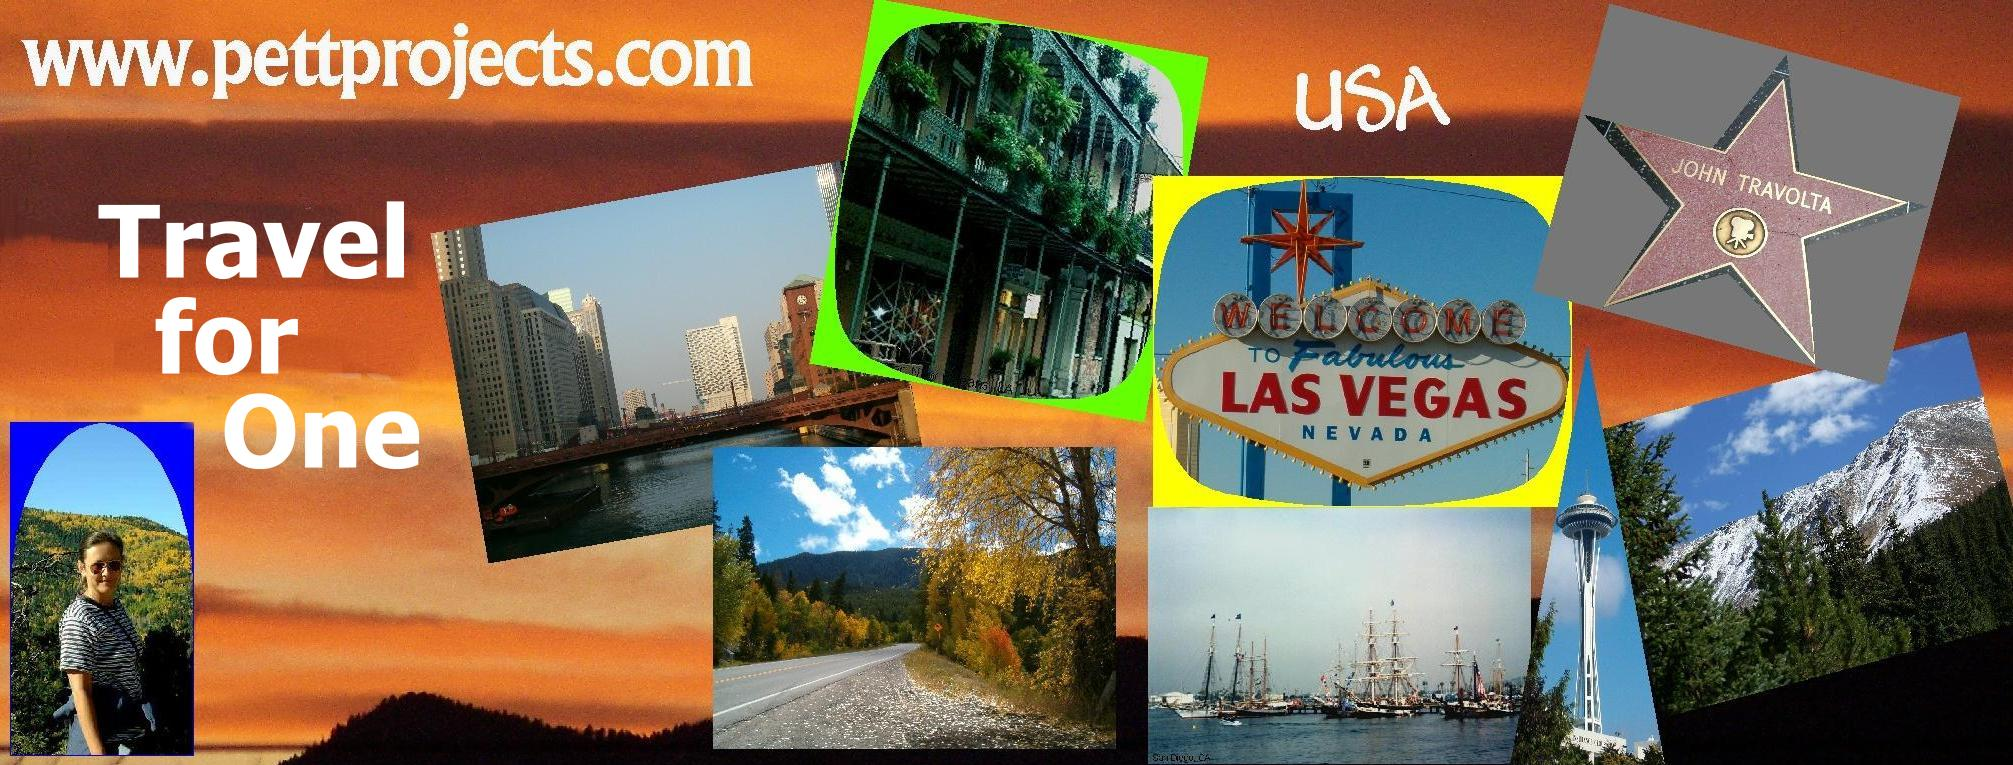 Travel Trips in the USA